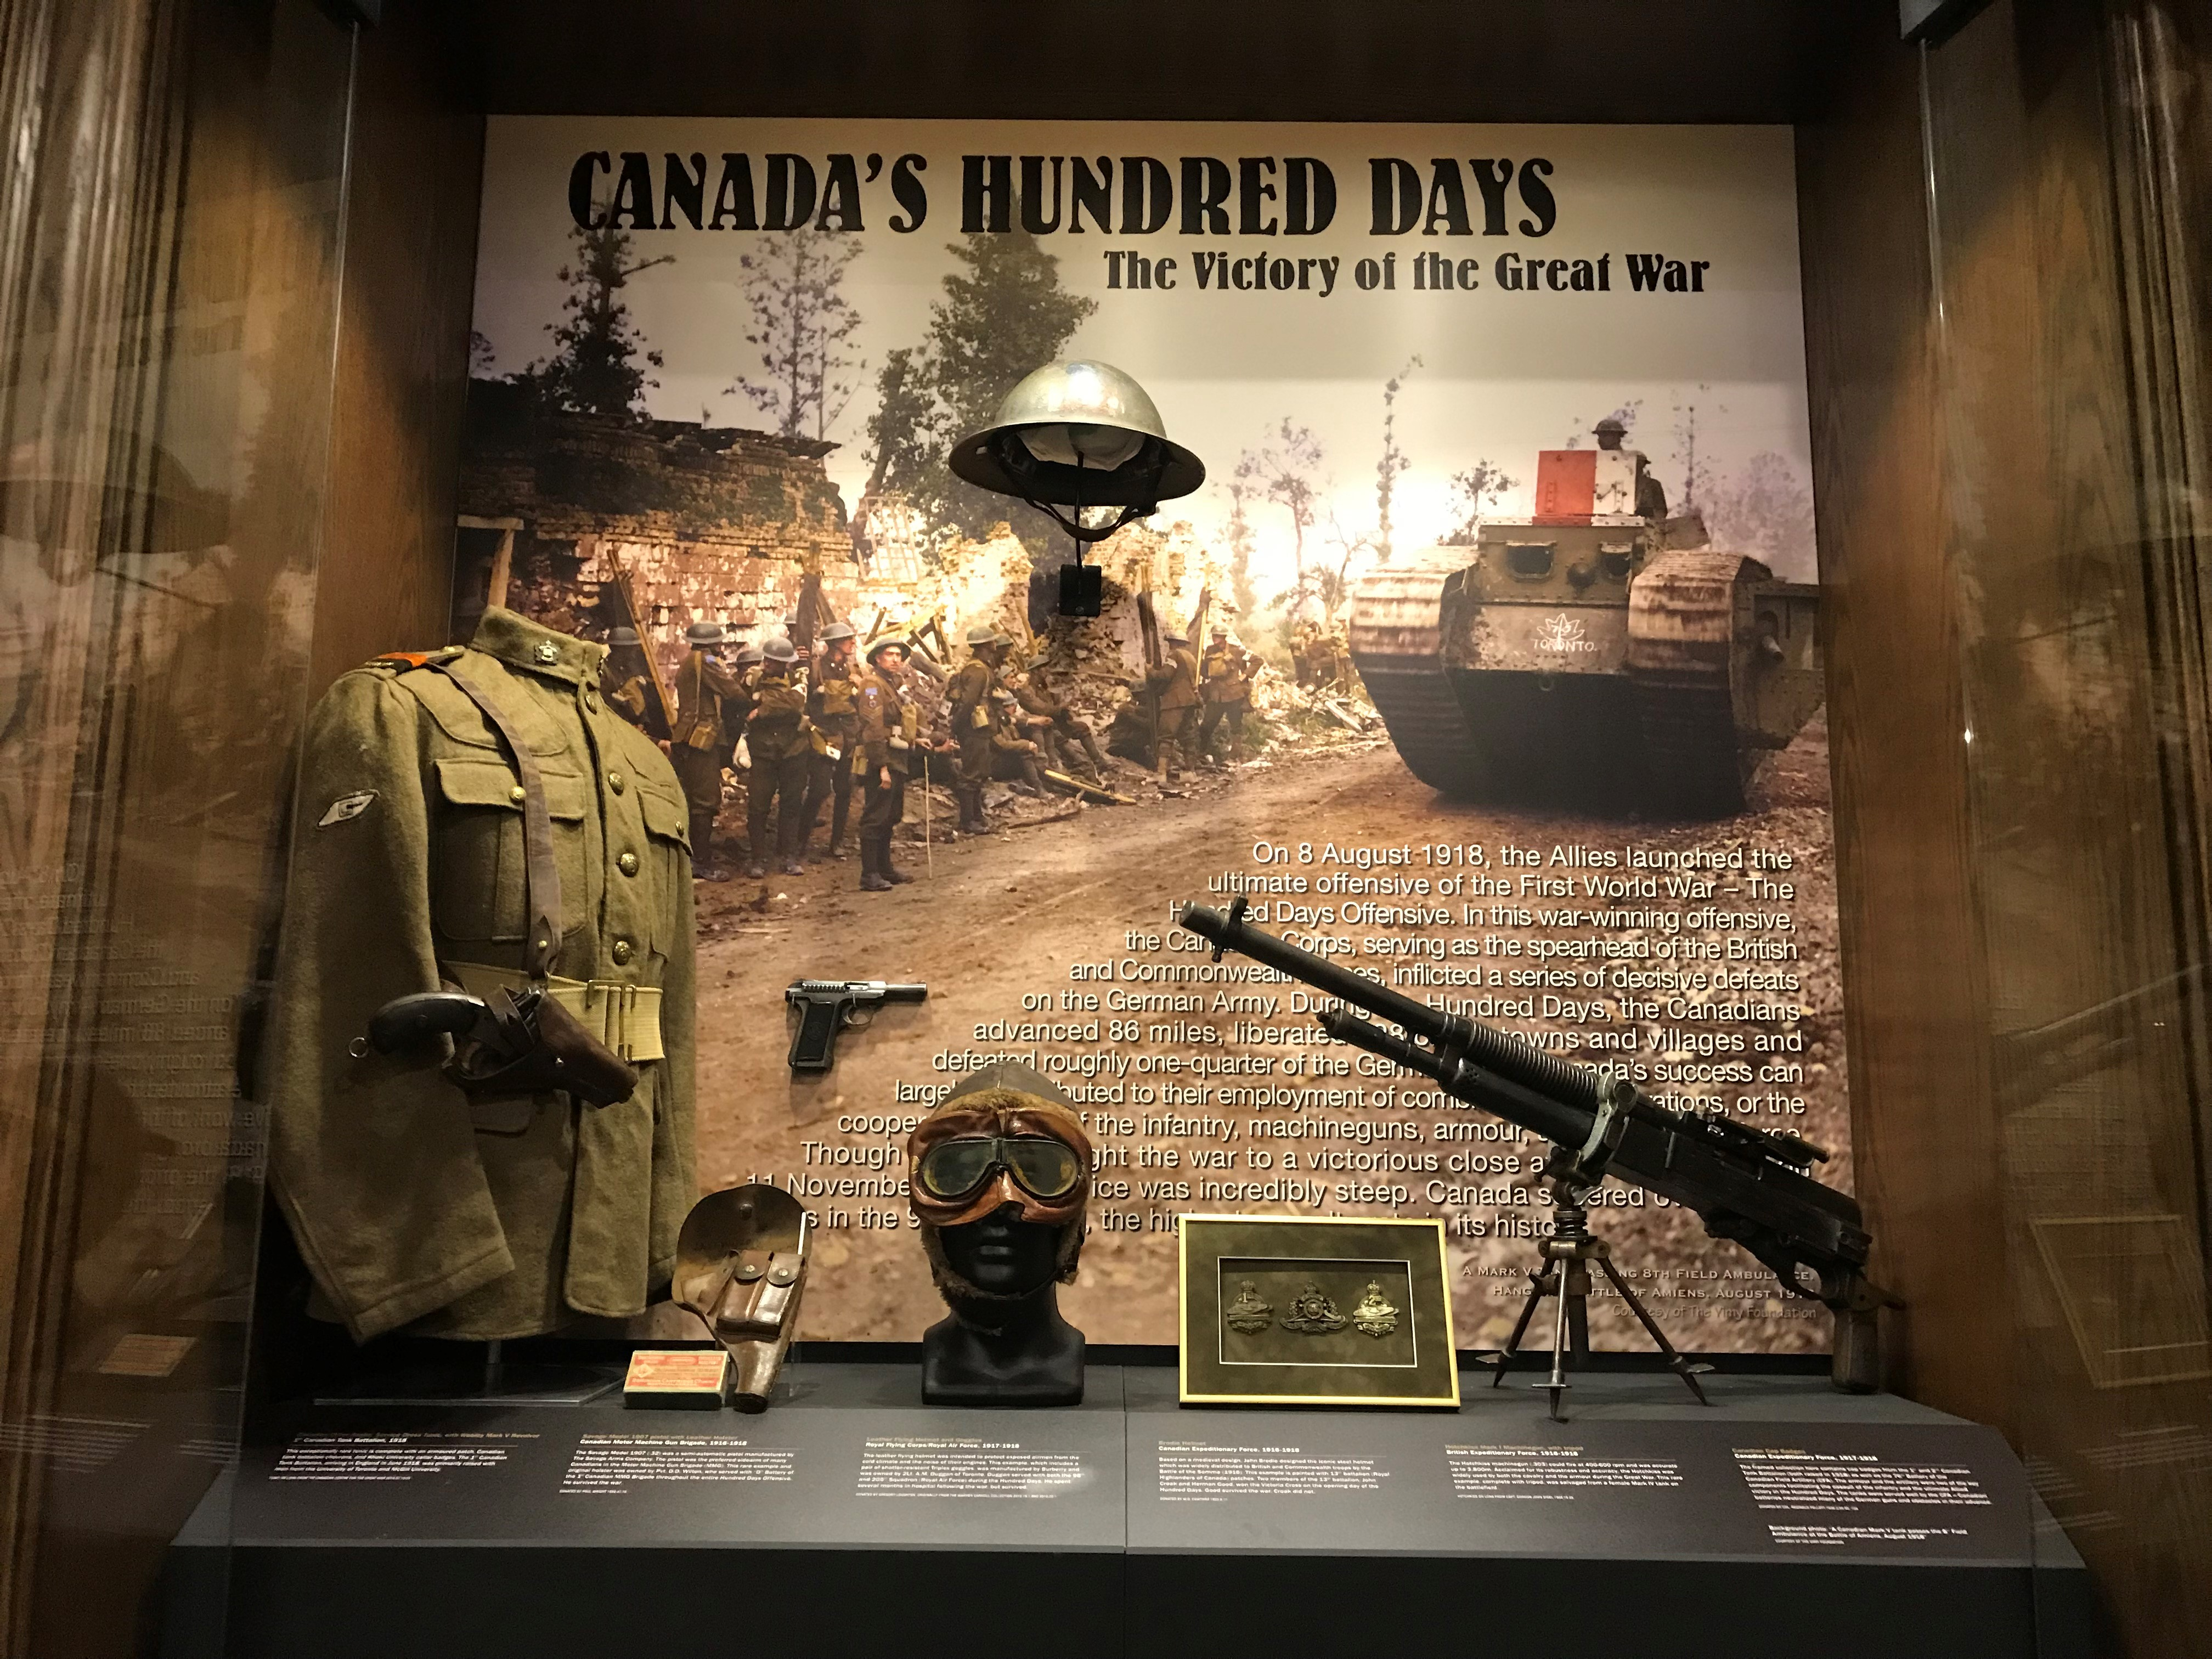 10 November 2018 - 1 April 2019 - Toronto, ON - Canada's Hundred Days: The Victory of the Great War